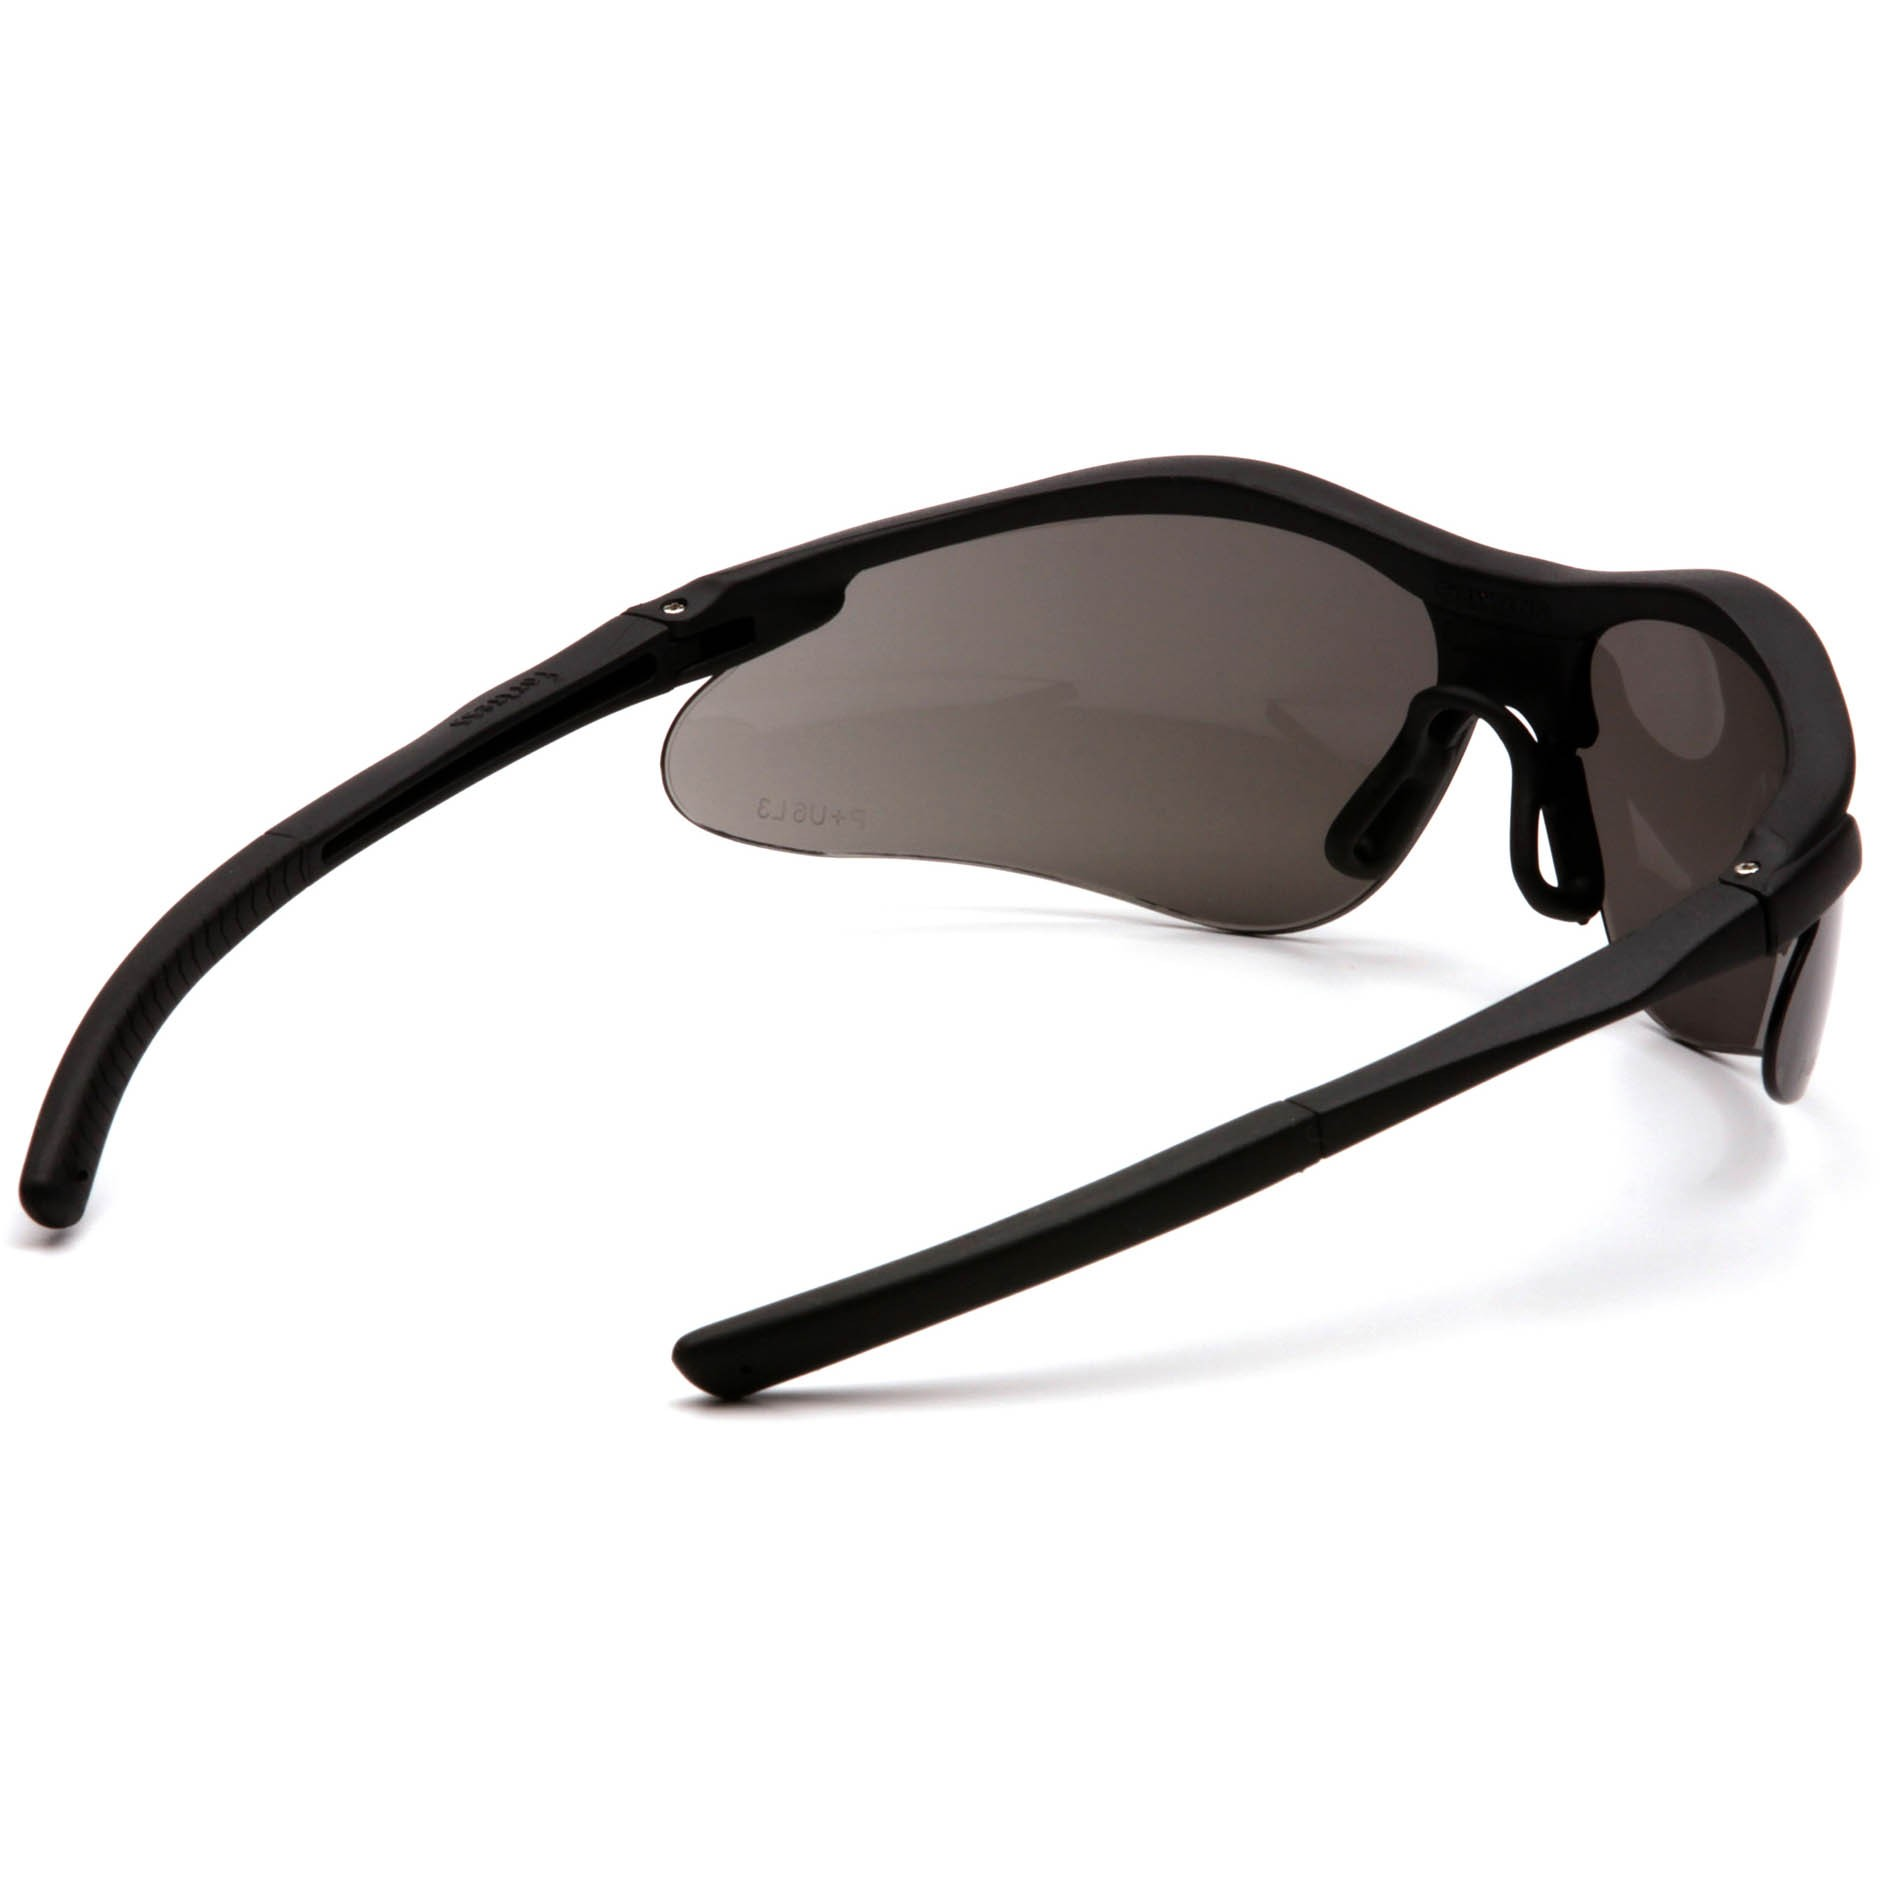 Pyramex Fortress Safety Glasses - Black Frame - Gray Lens ...